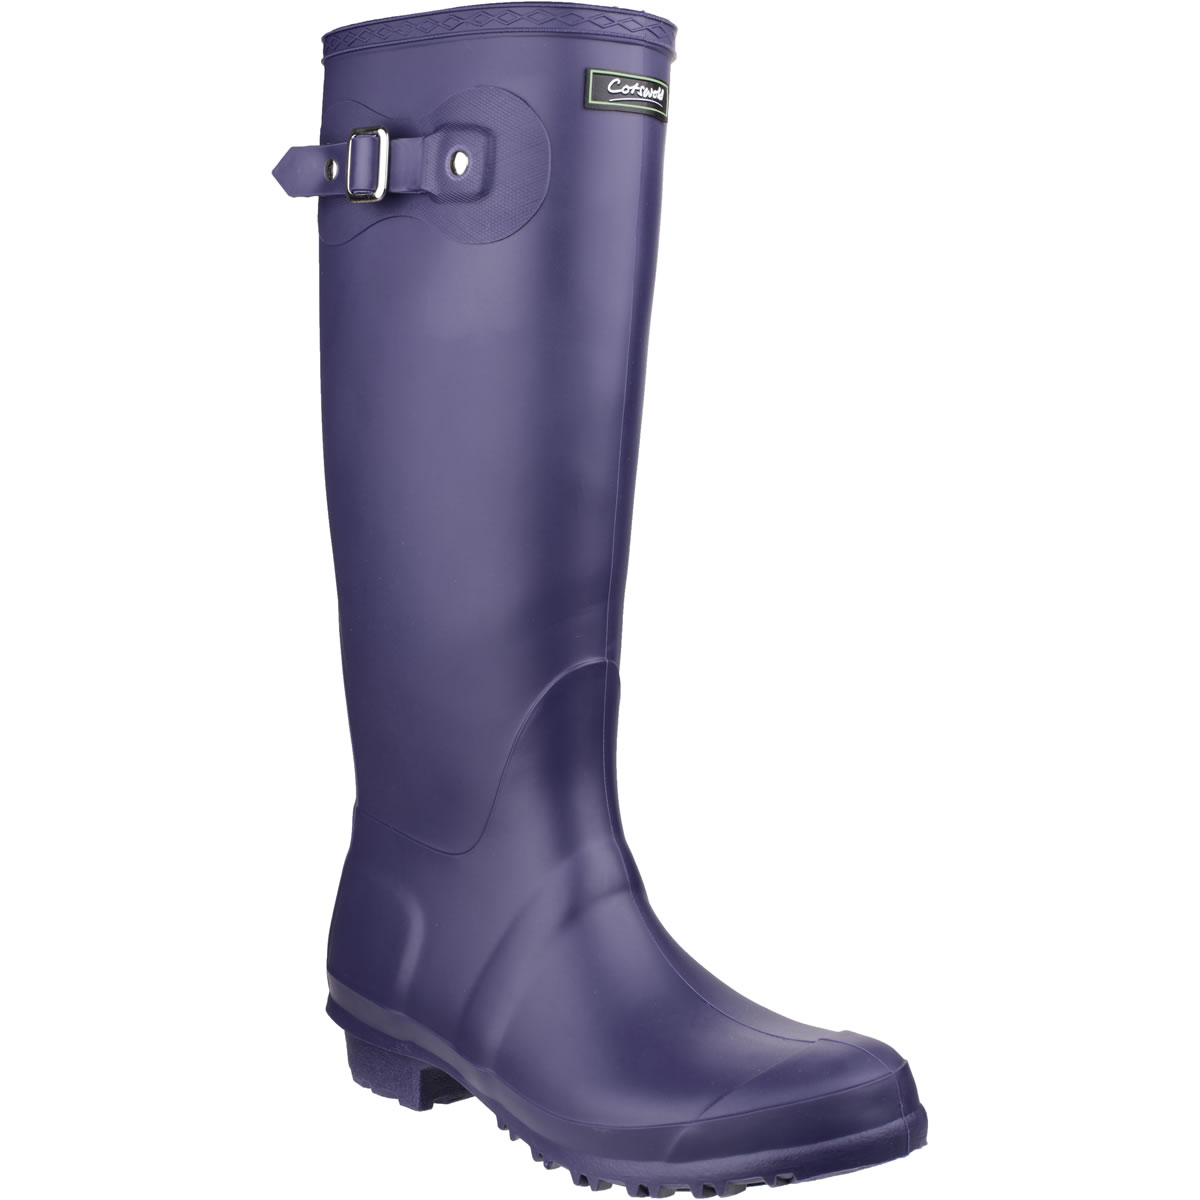 Extra image of Womens Cotswold Sandringham Wellington Boots - Purple - UK Size 4